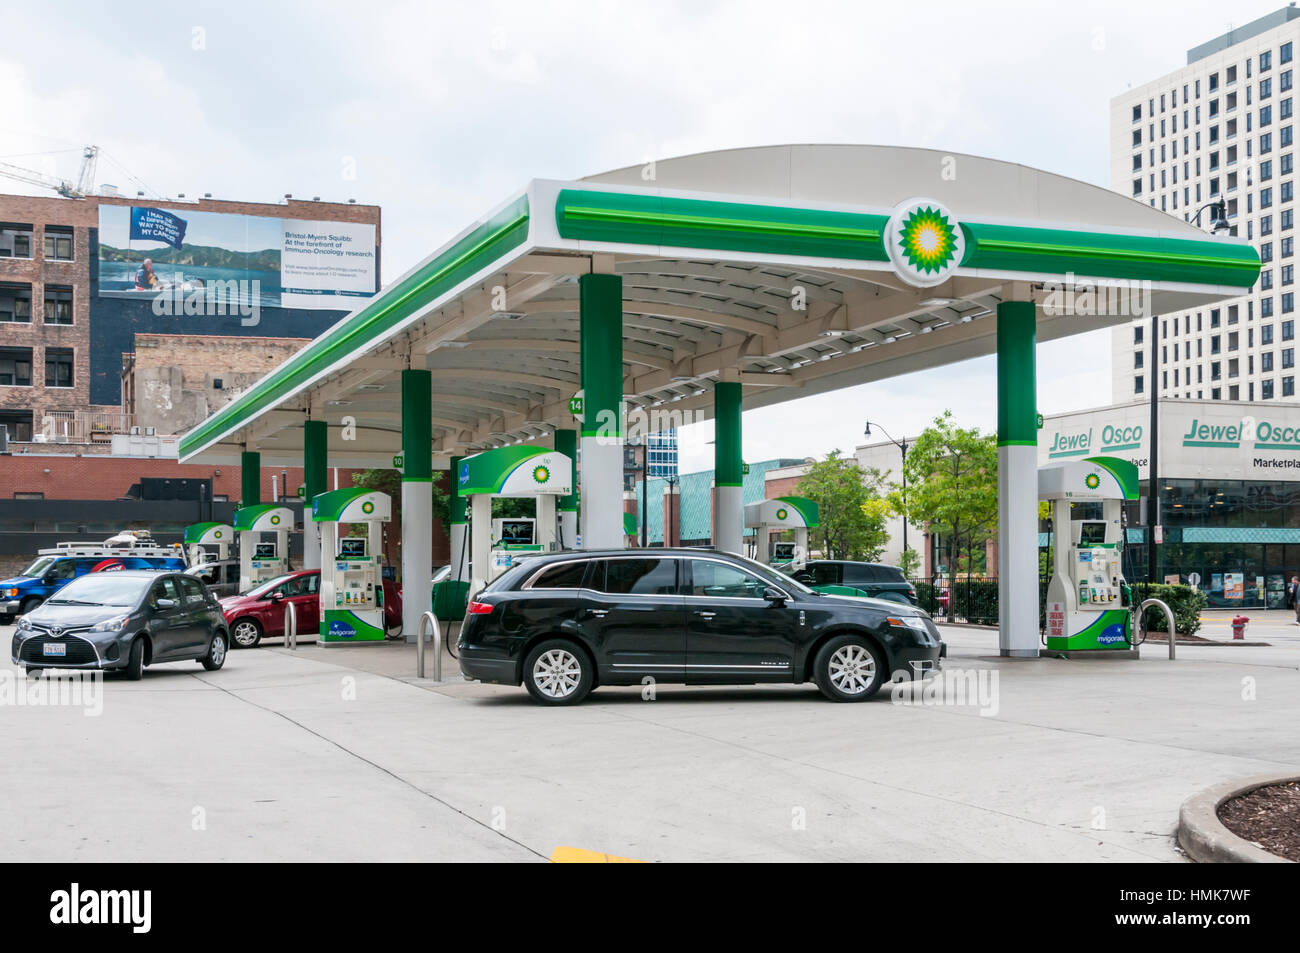 Garage Canopy Chicago : Vorplatz der bp tankstelle in chicago usa stockfoto bild